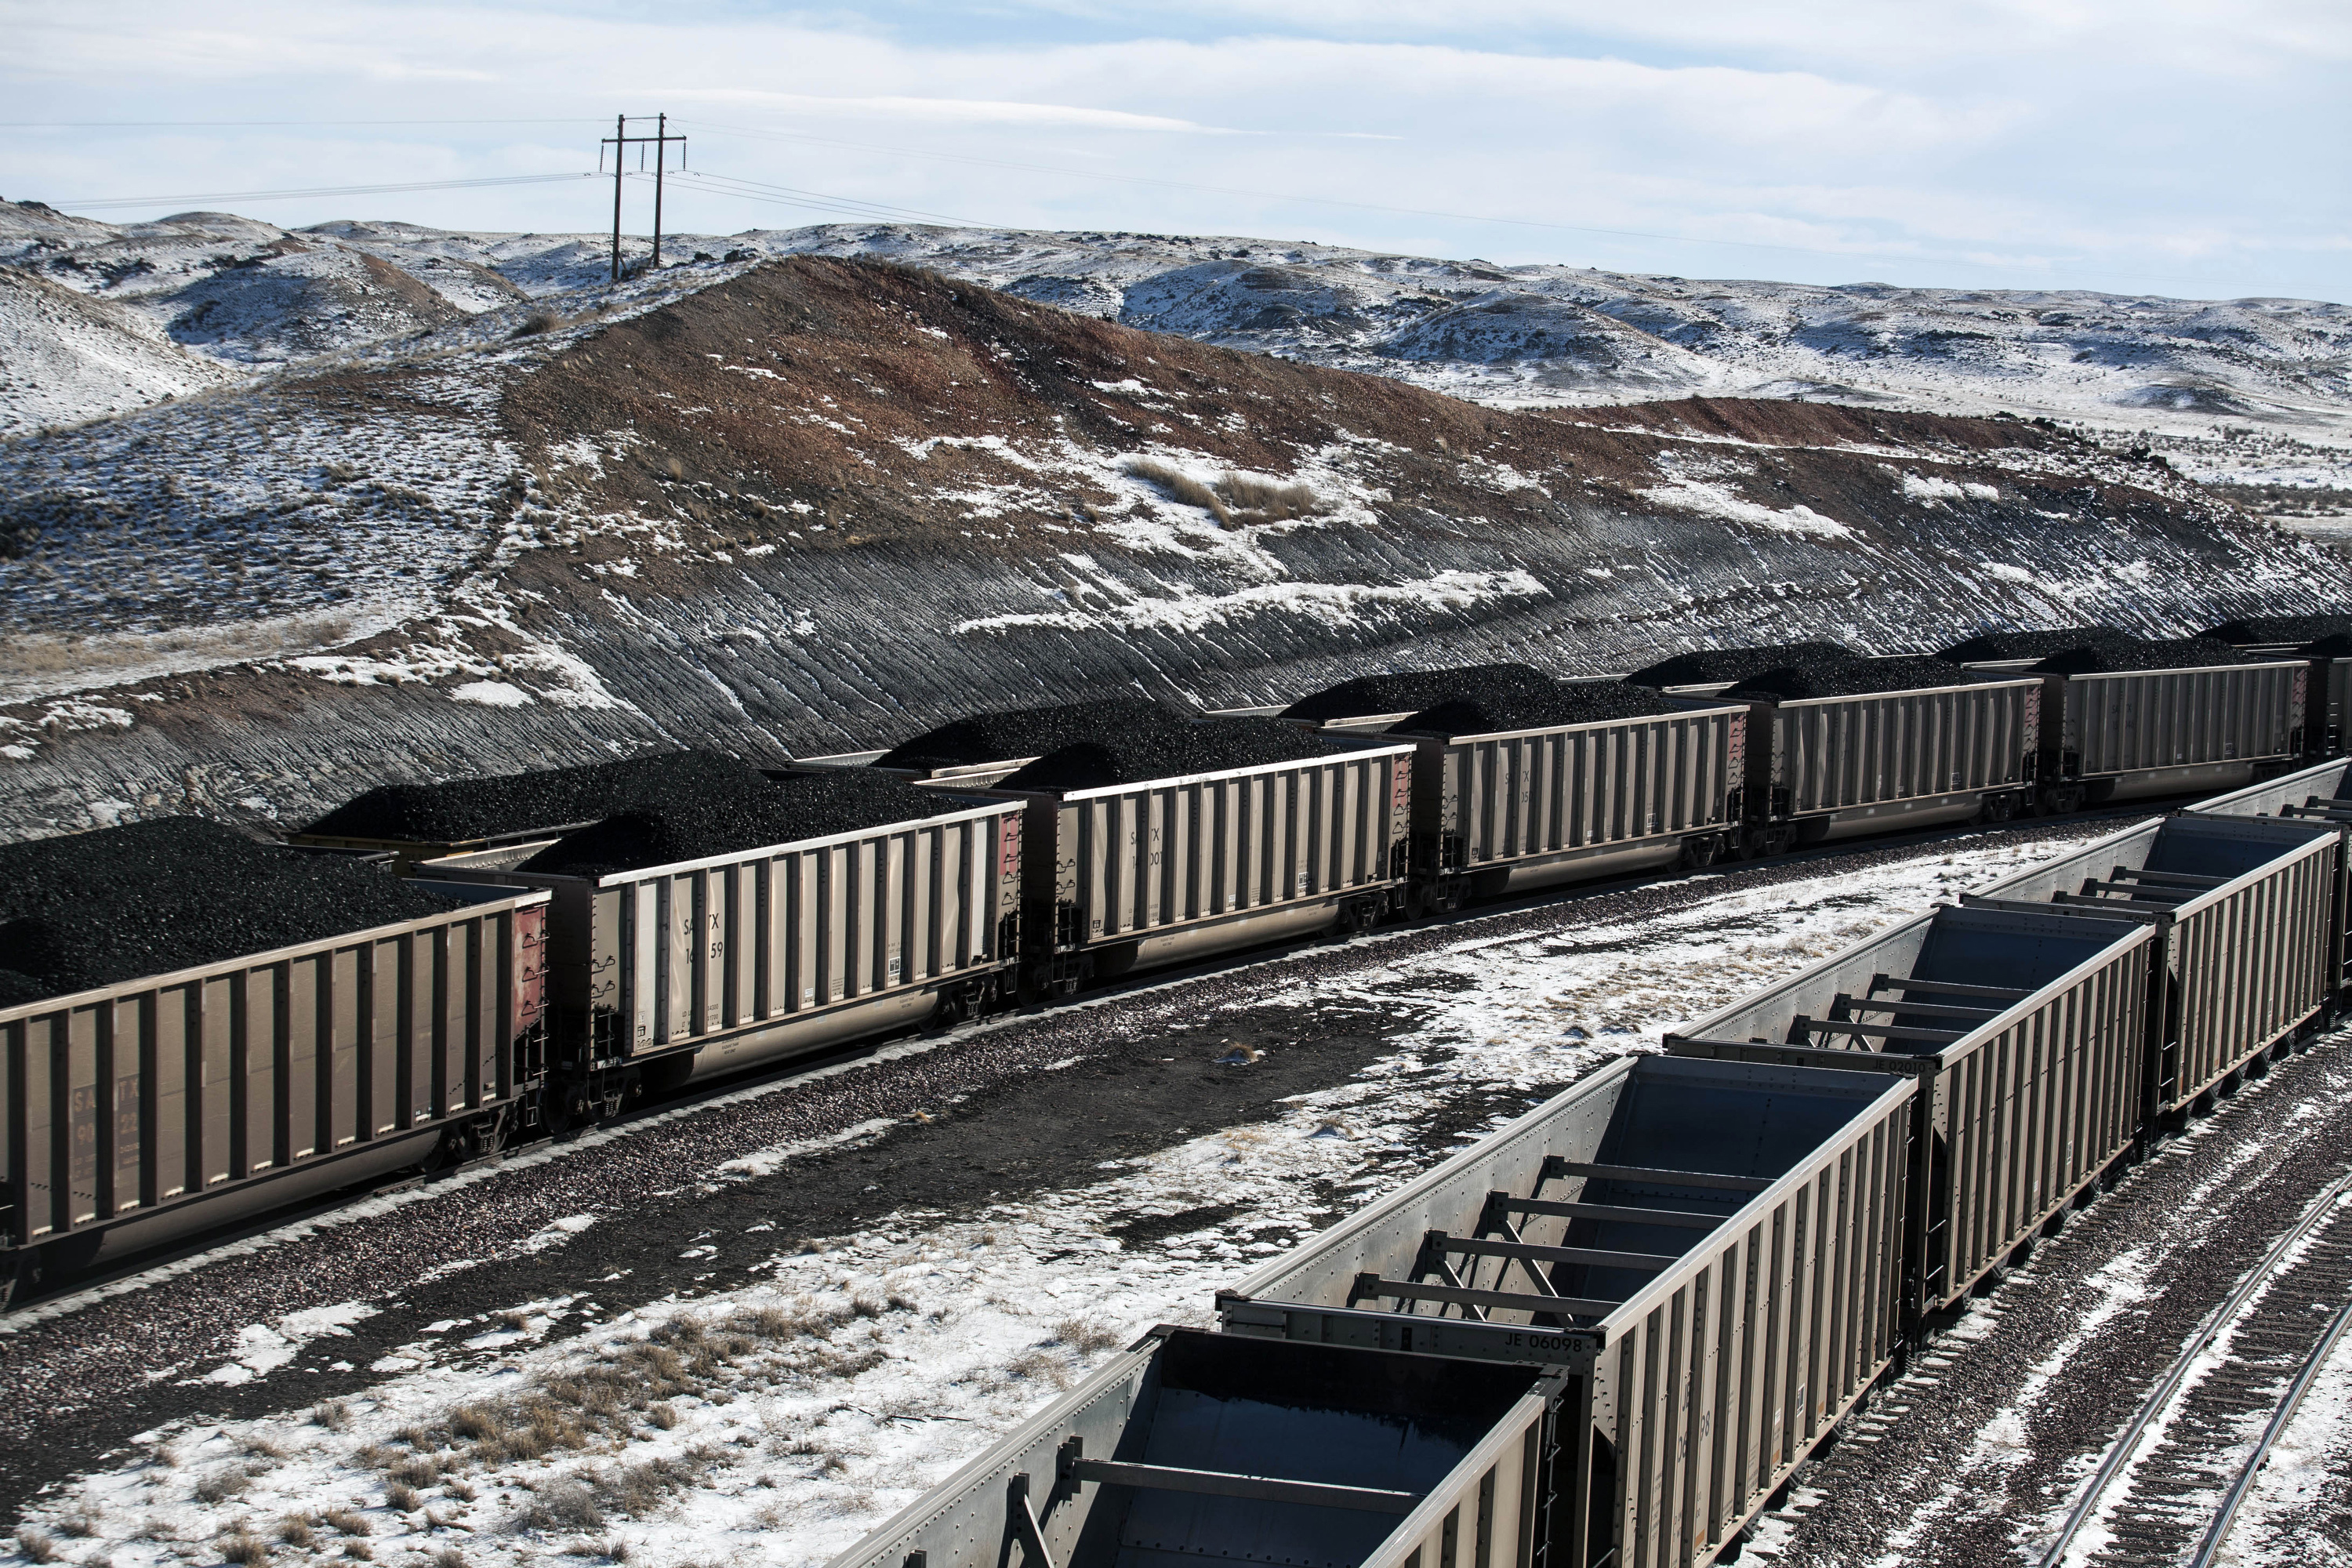 AP Explains Trump Coal-2 FILE - In this Jan. 9, 2014, file photo, rail cars are filled with coal and sprayed with a topper agent to suppress dust at Cloud Peak Energy's Antelope Mine north of Douglas, Wyo. President Donald Trump says withdrawing from a global climate change agreement will boost the U.S. economy but existing market forces have had far more of an effect on the fossil fuel industries than climate regulations. For at least three years now, the coal industry has been reeling from growing competition from natural gas, wind and solar power. (Ryan Dorgan/The Casper Star-Tribune via AP, File)